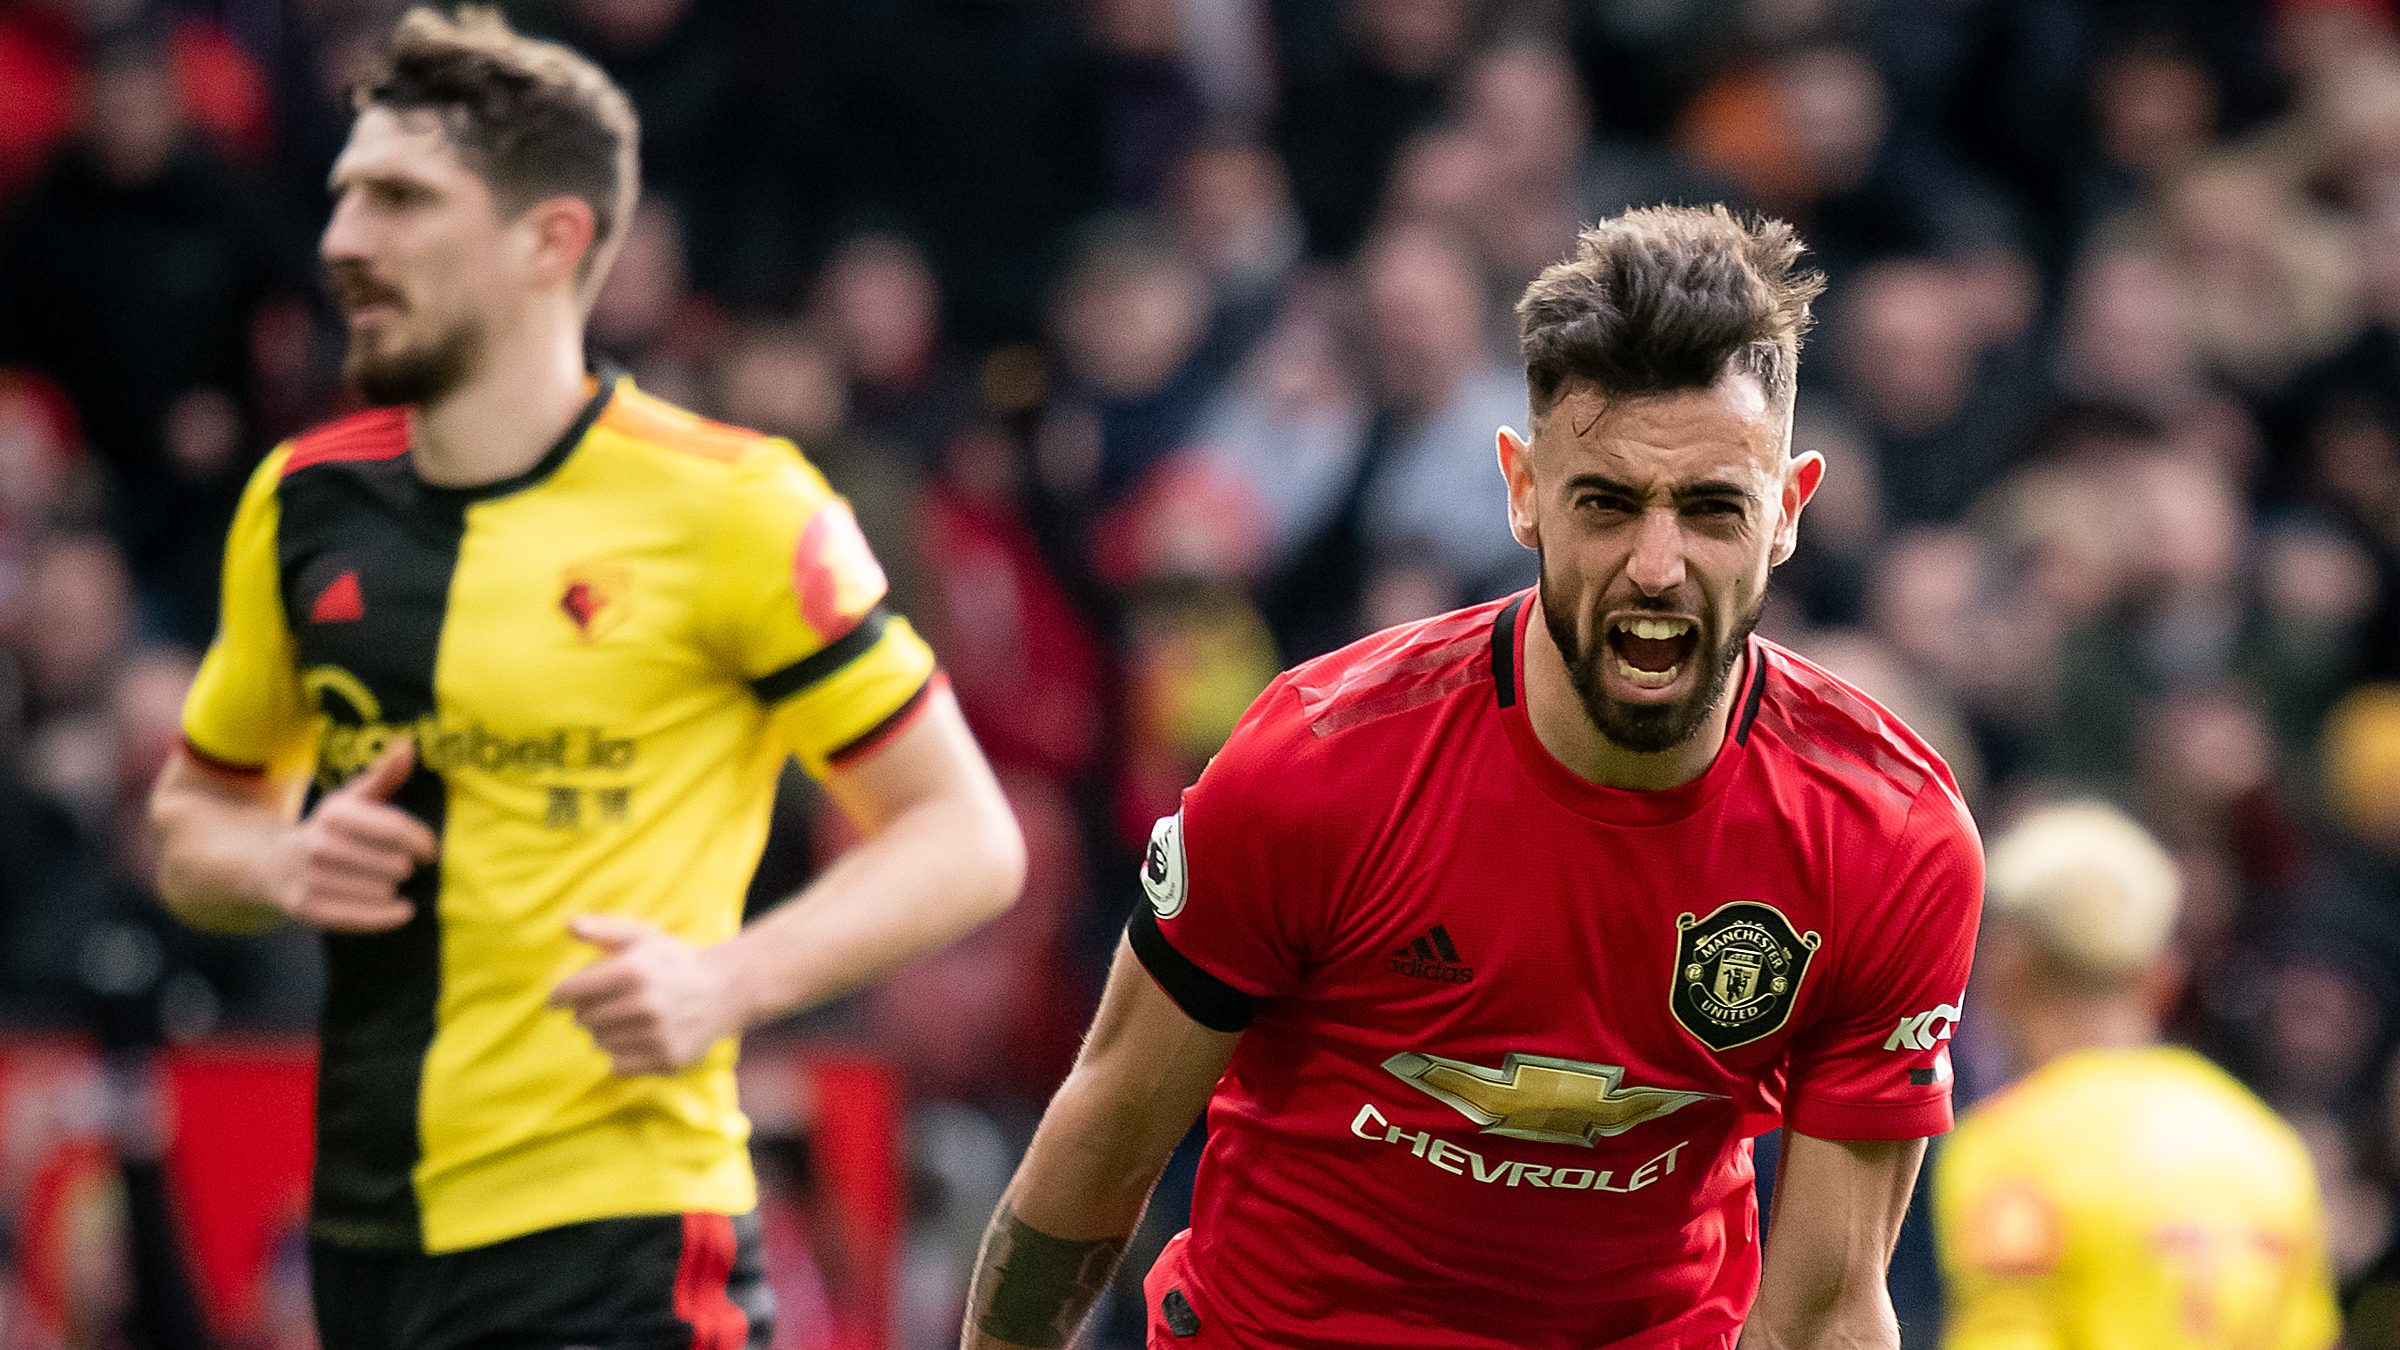 Fernandes runs the show as Manchester United crushes Watford